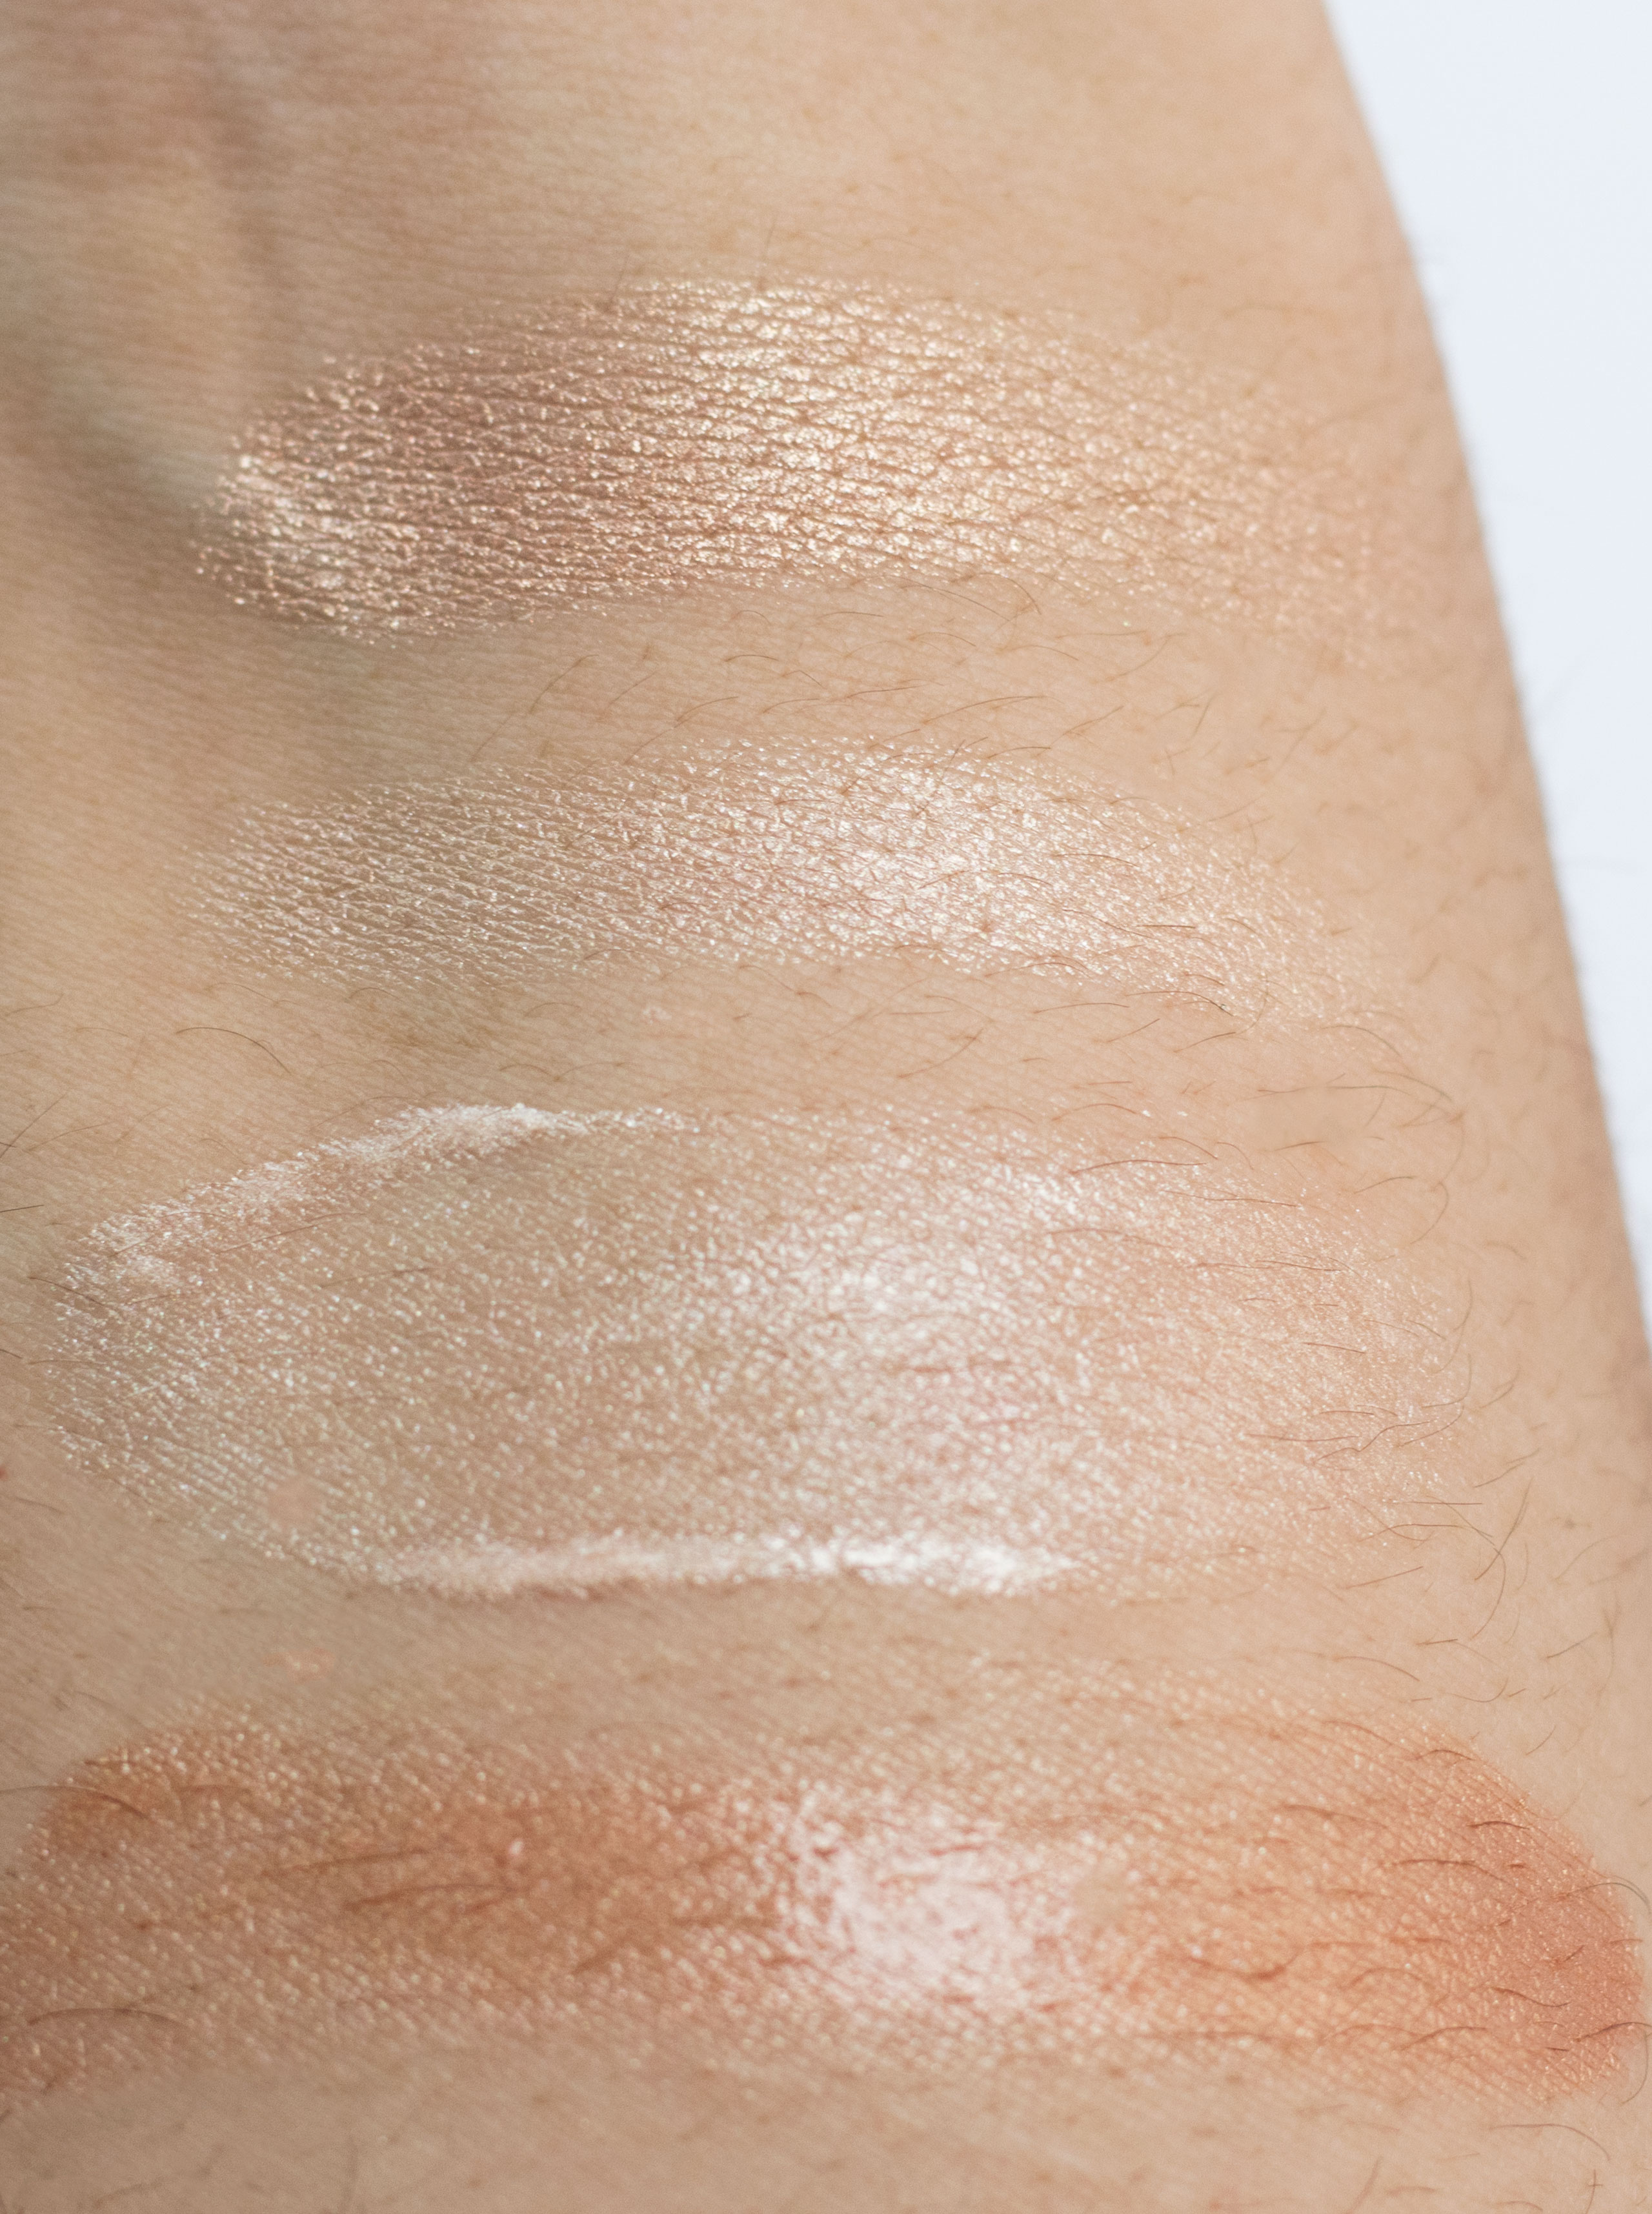 top to bottom: Burberry Fresh Glow Rose Gold, Burberry Fresh Glow Highlighting Luminous Pen, Burberry Fresh Glow Luminous Base No 1 Nude Radiance and No 2 Golden Radiance